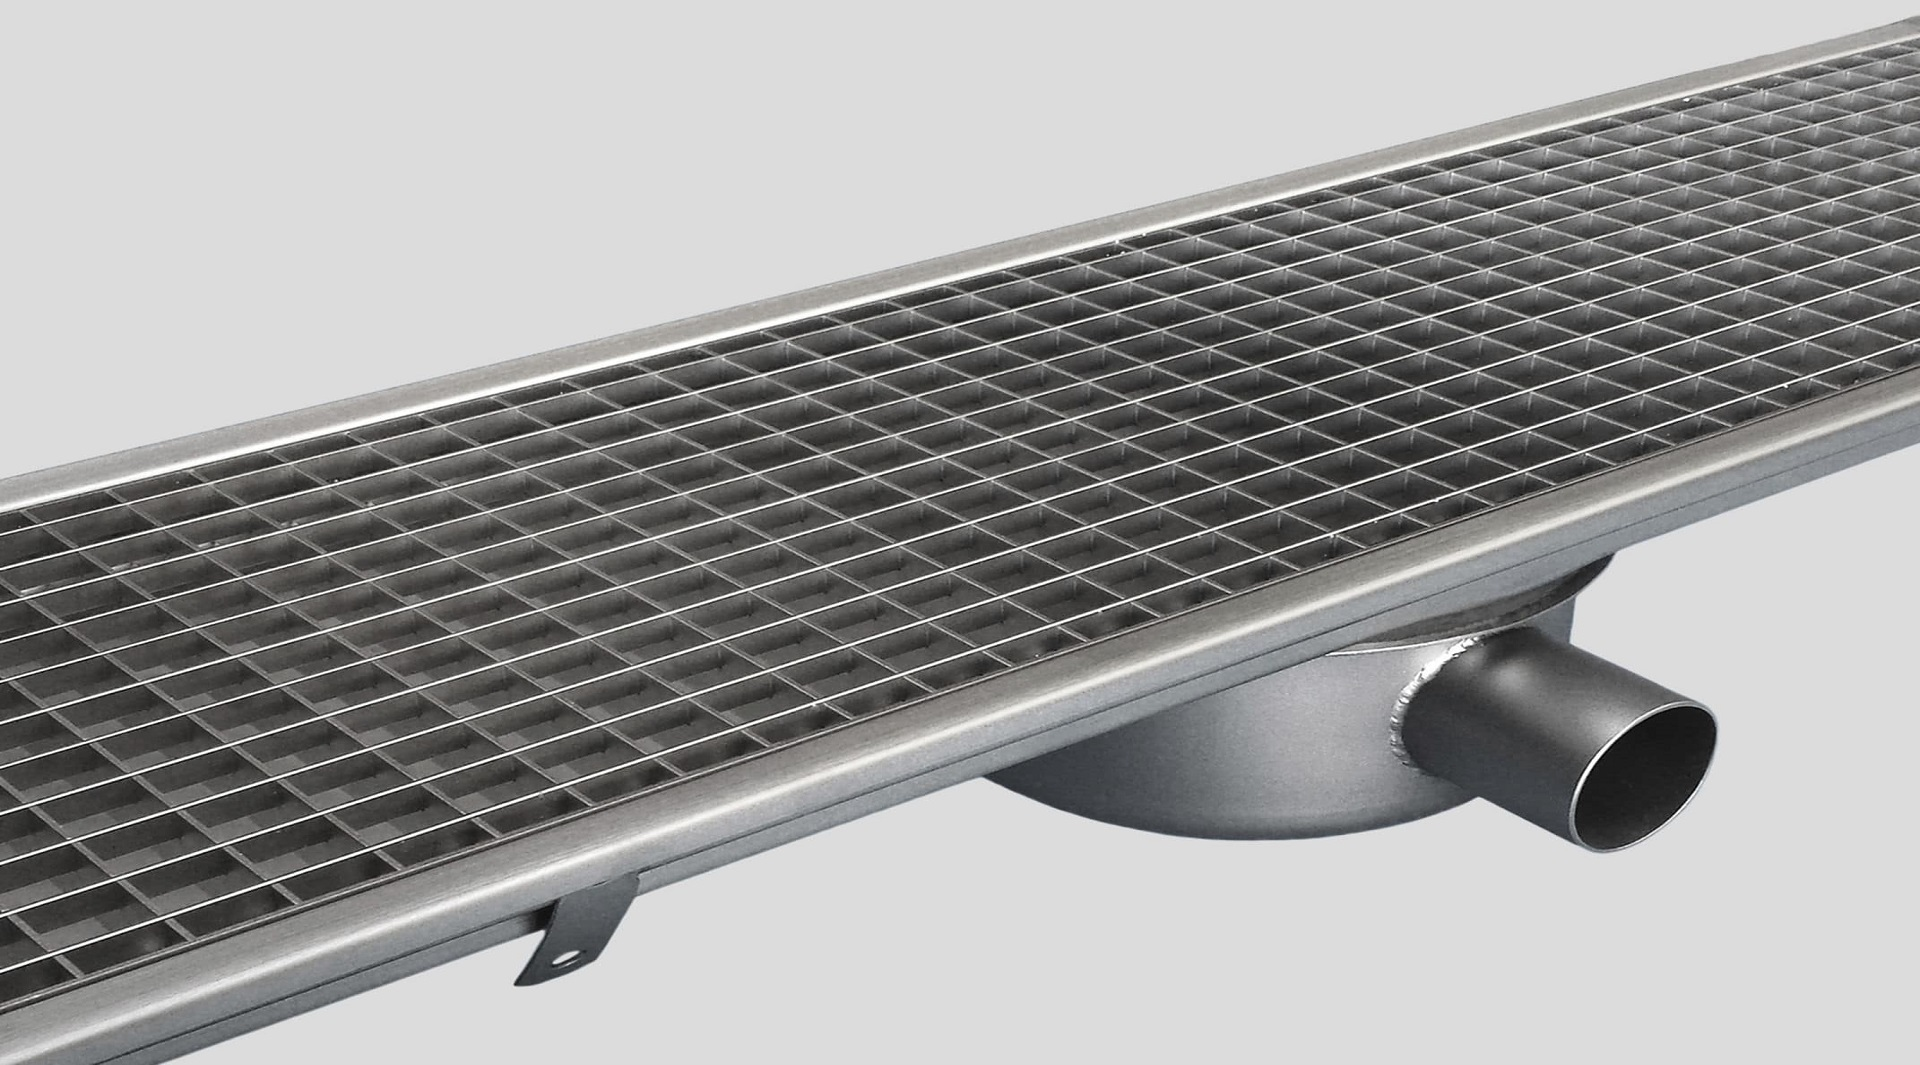 Stainless steel grating newcore global pvt ltd